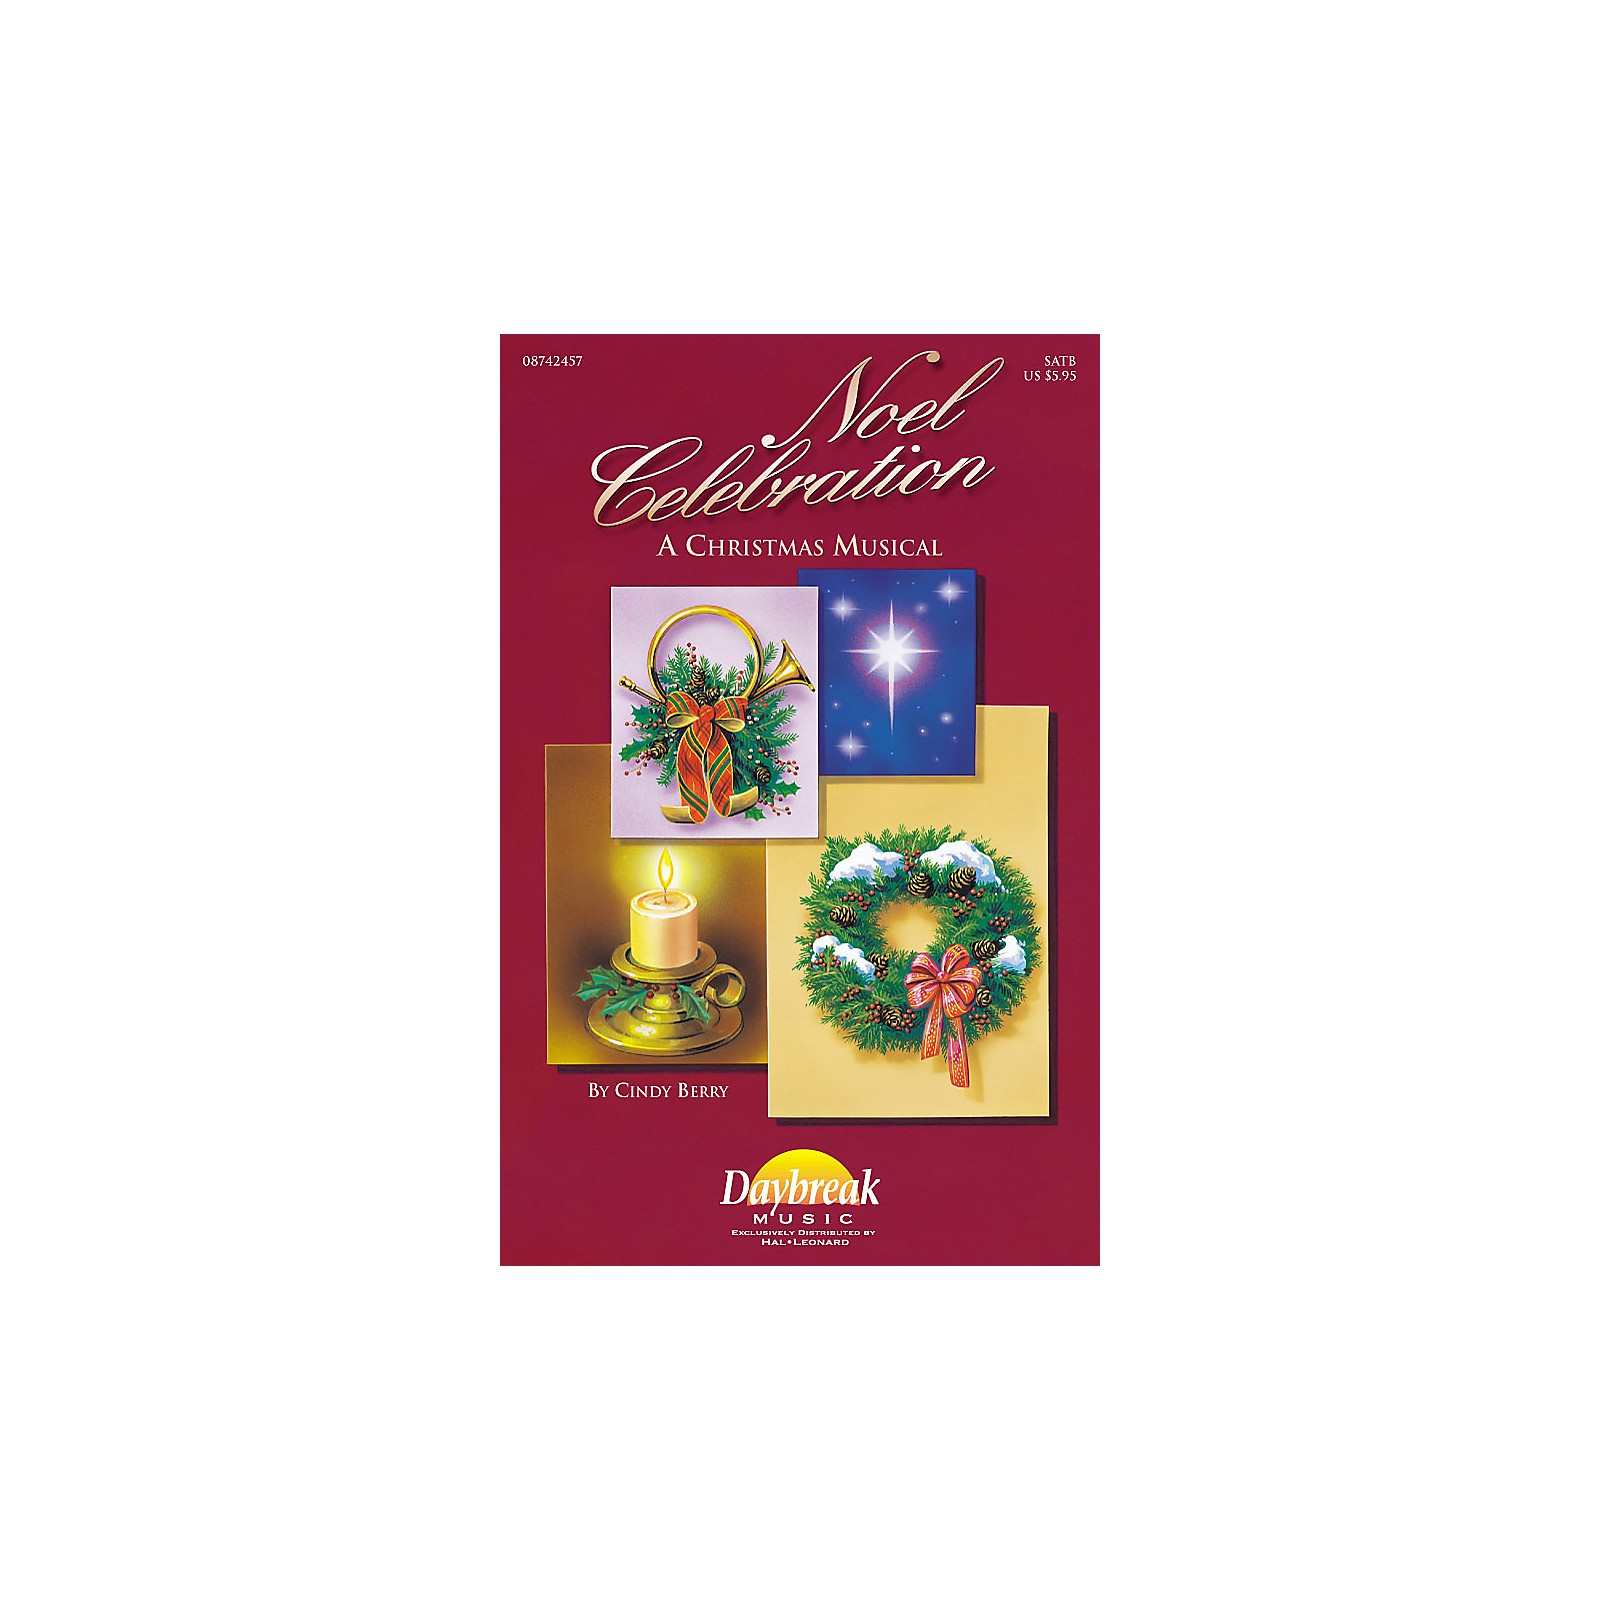 Daybreak Music Noel Celebration (A Sacred Musical) SATB composed by Cindy Berry